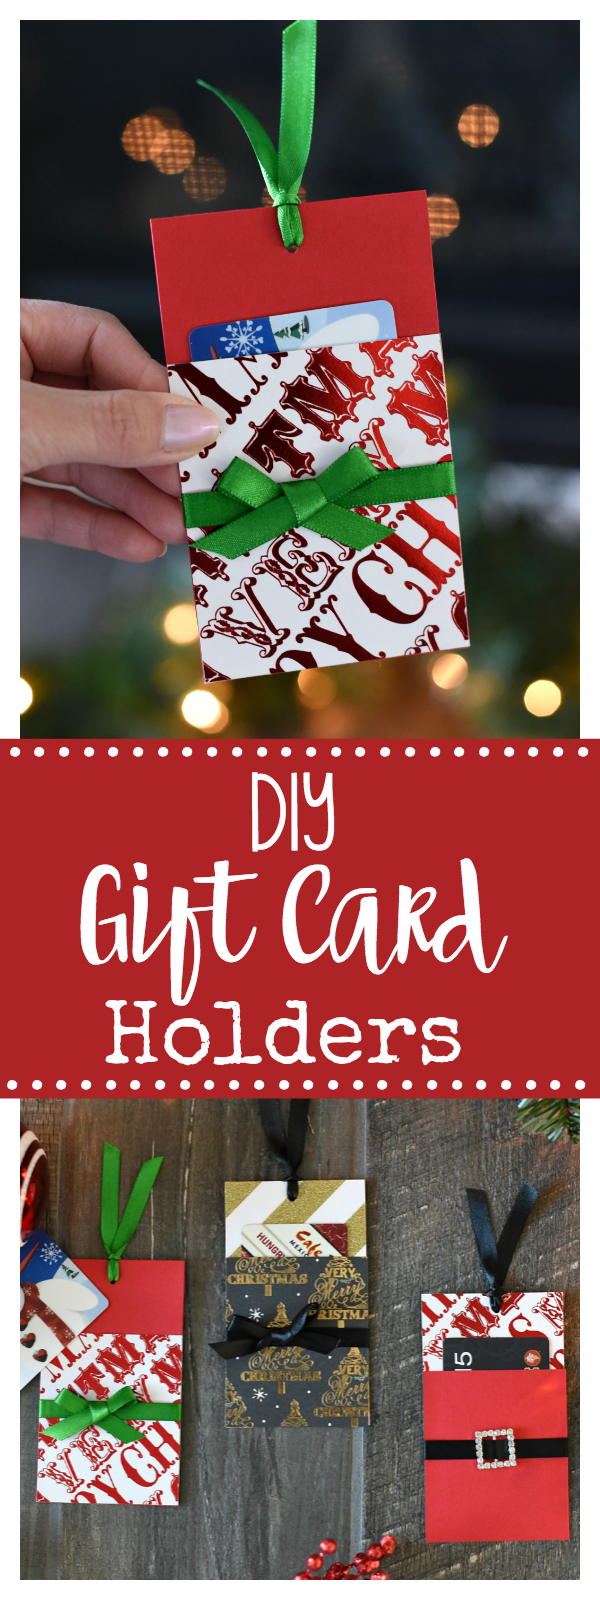 DIY Gift Card Holders for Christmas